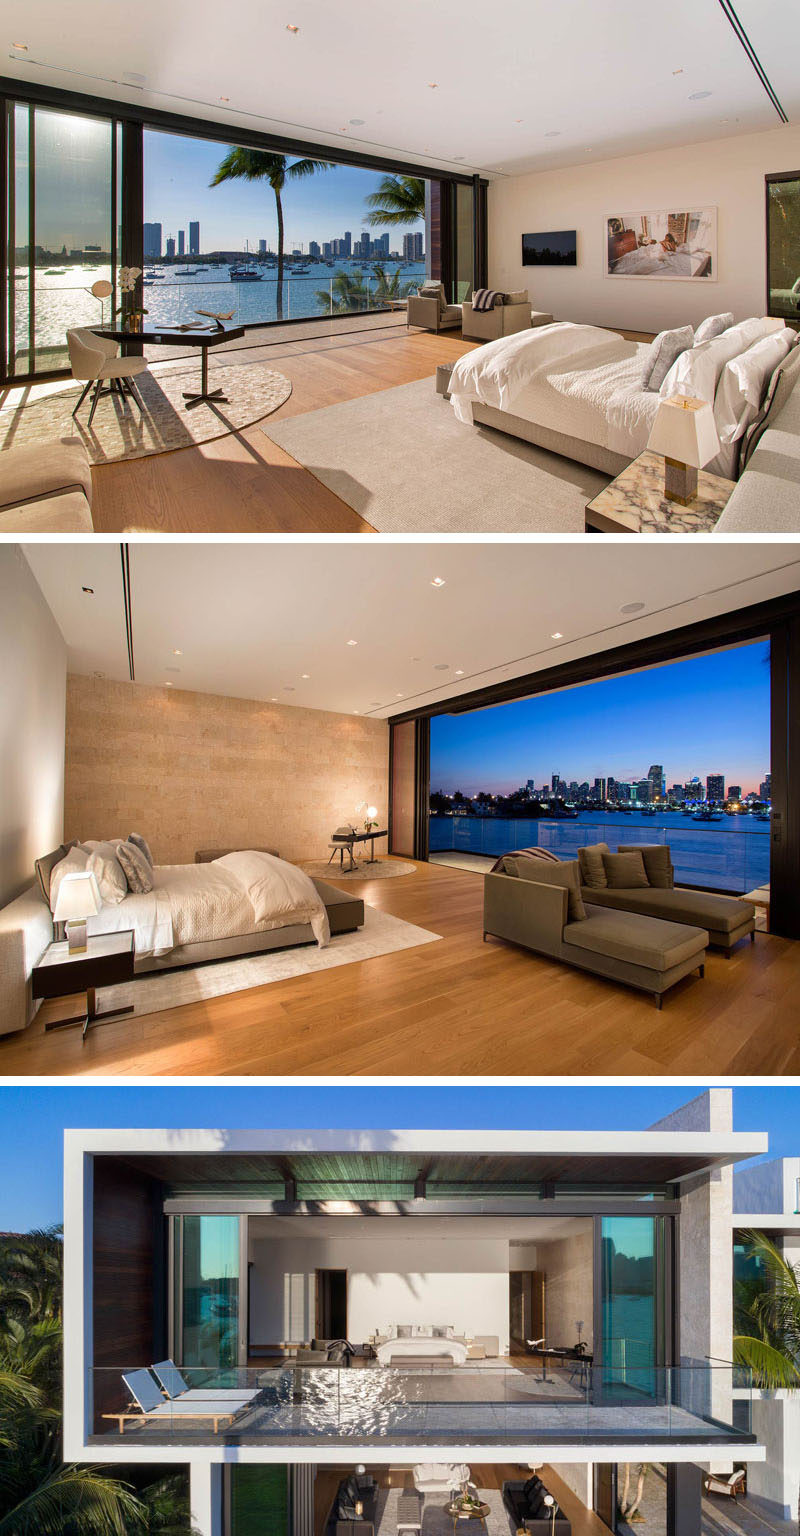 This large and modern master bedroom has a small sitting area and work area that opens up to a private balcony.